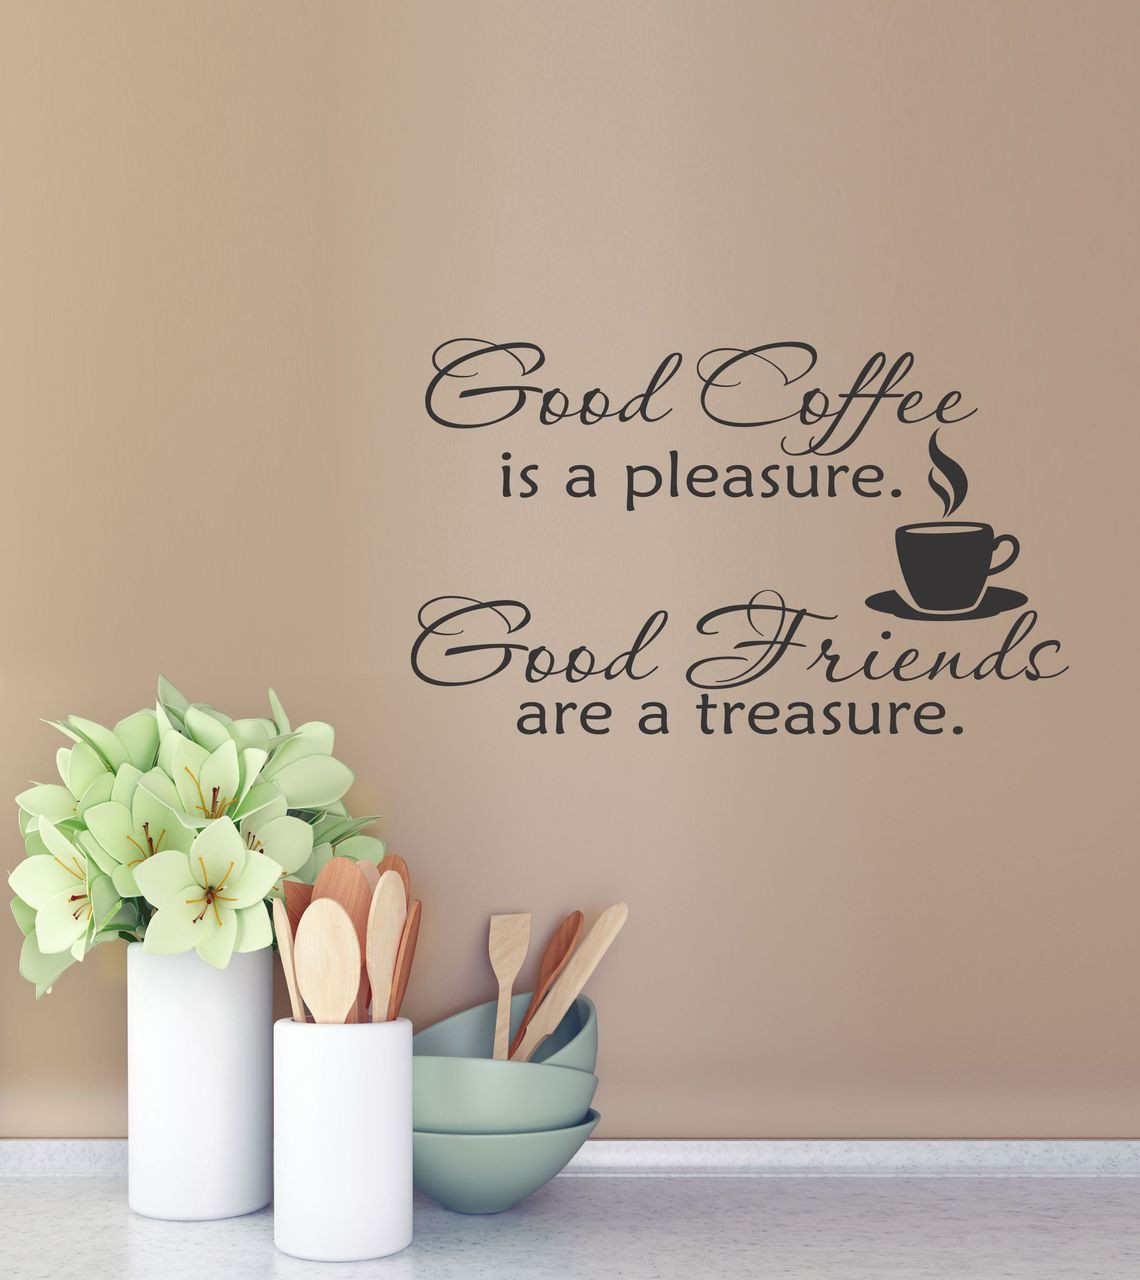 Wall Decals Quotes: Good Coffee Good Friends Kitchen Wall Decal Quote Vinyl